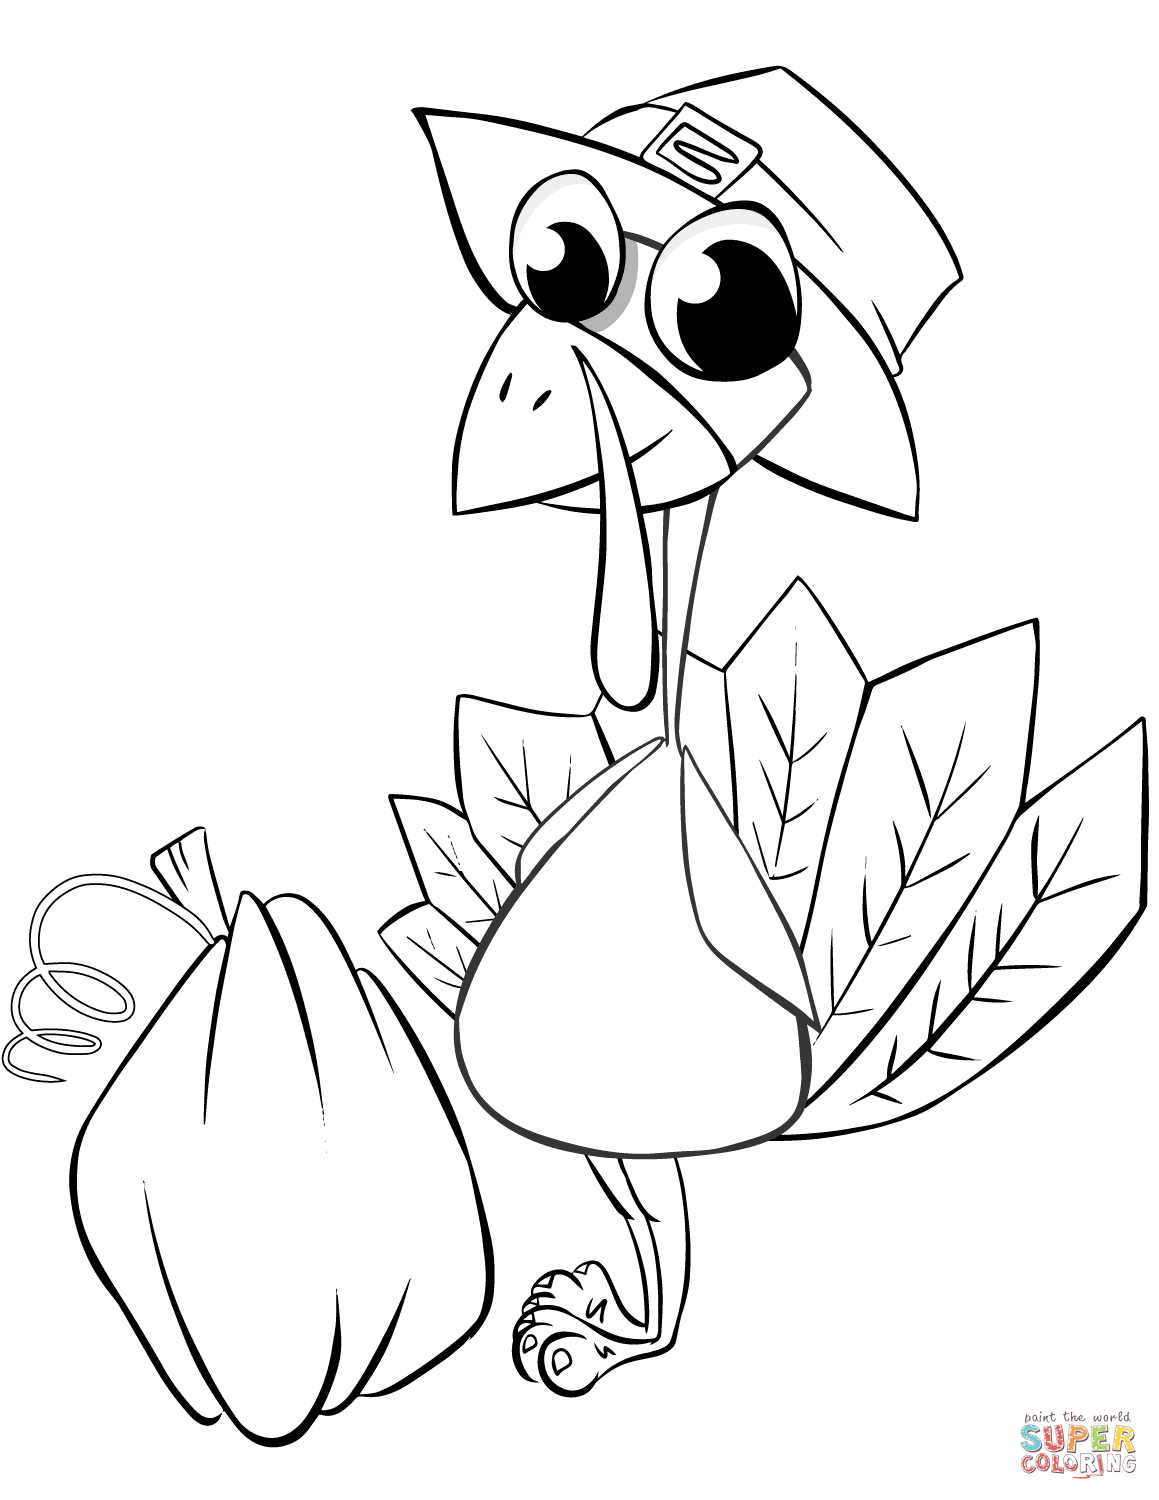 Turkey Coloring Pages   Free Coloring Pages - Free Printable Pictures Of Turkeys To Color